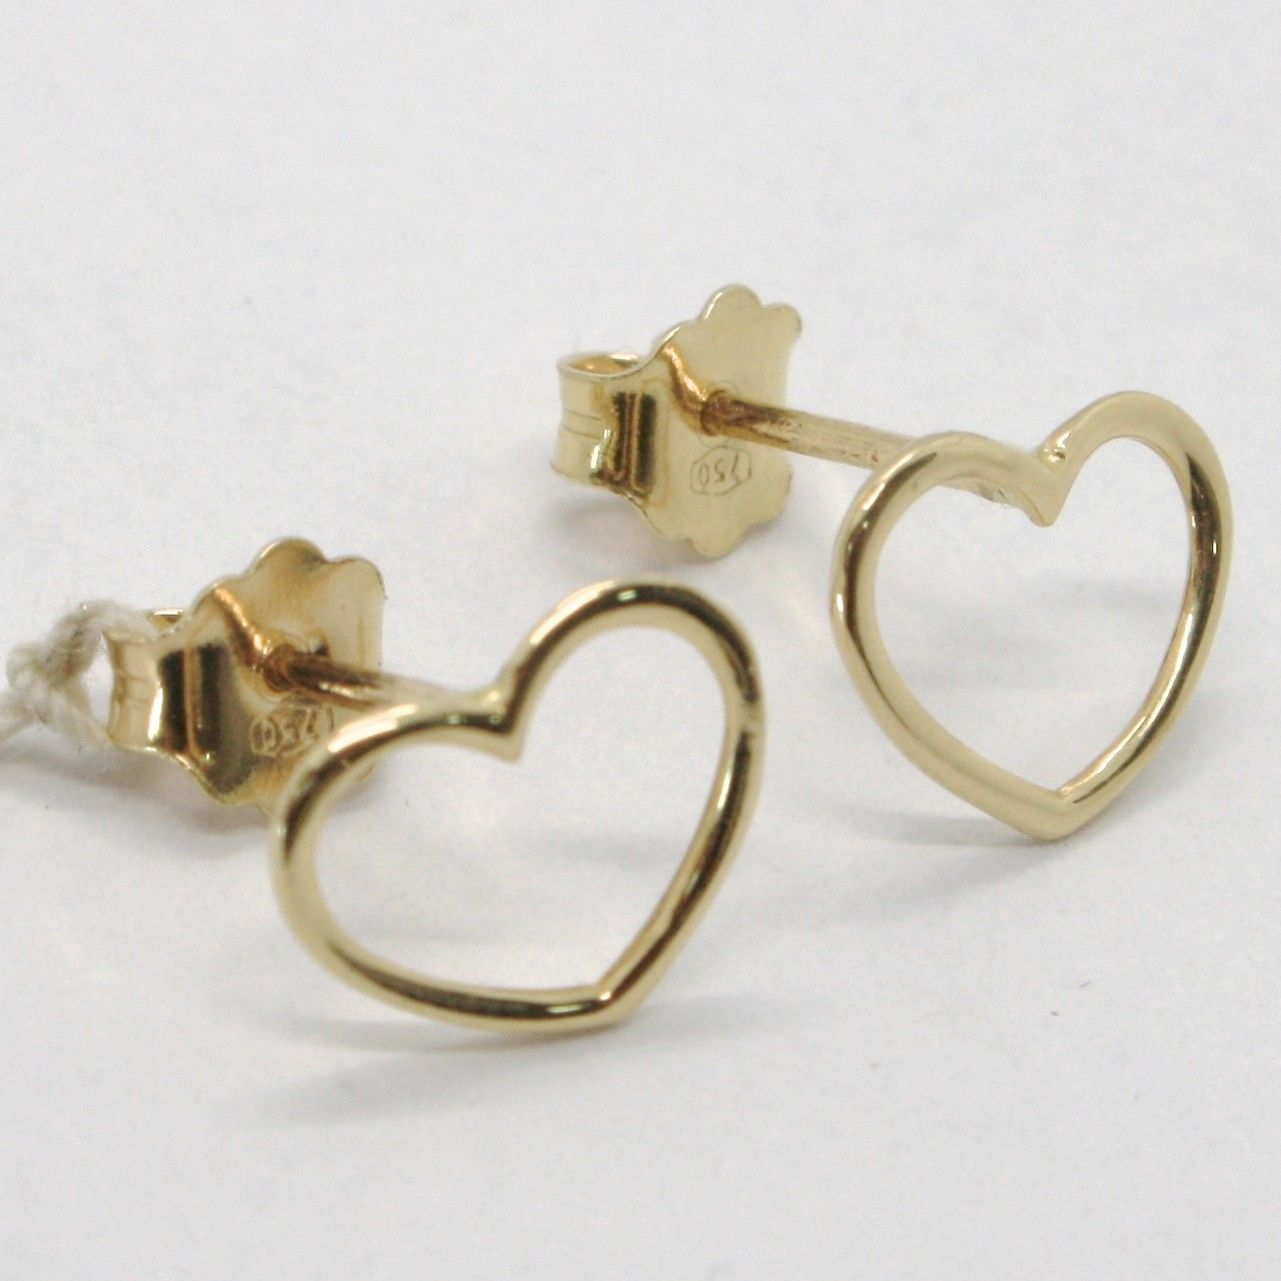 18K YELLOW GOLD EARRINGS, WITH HEART, LENGTH 8 MM, MADE IN ITALY